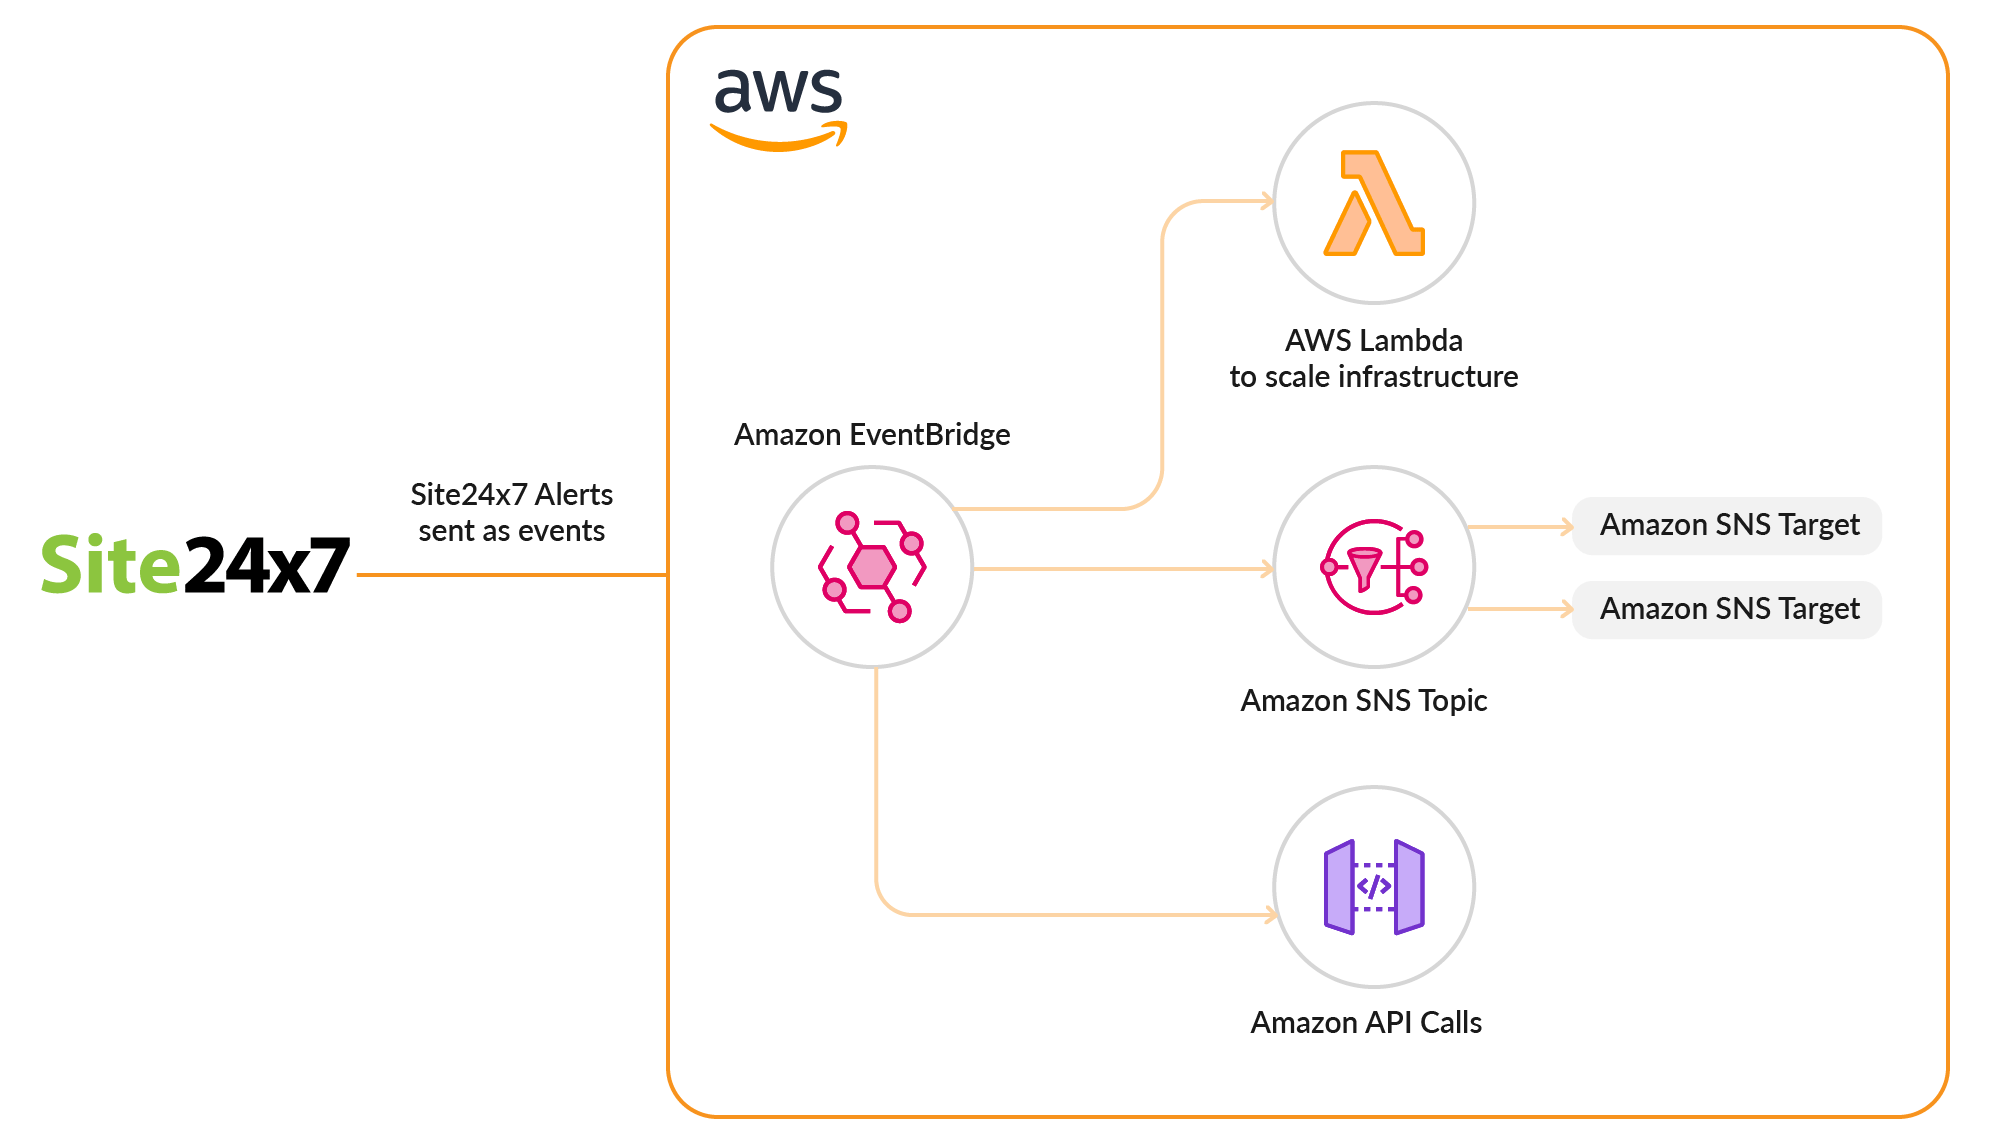 Automate serverless workflows using Site24x7 EventBridge Integration